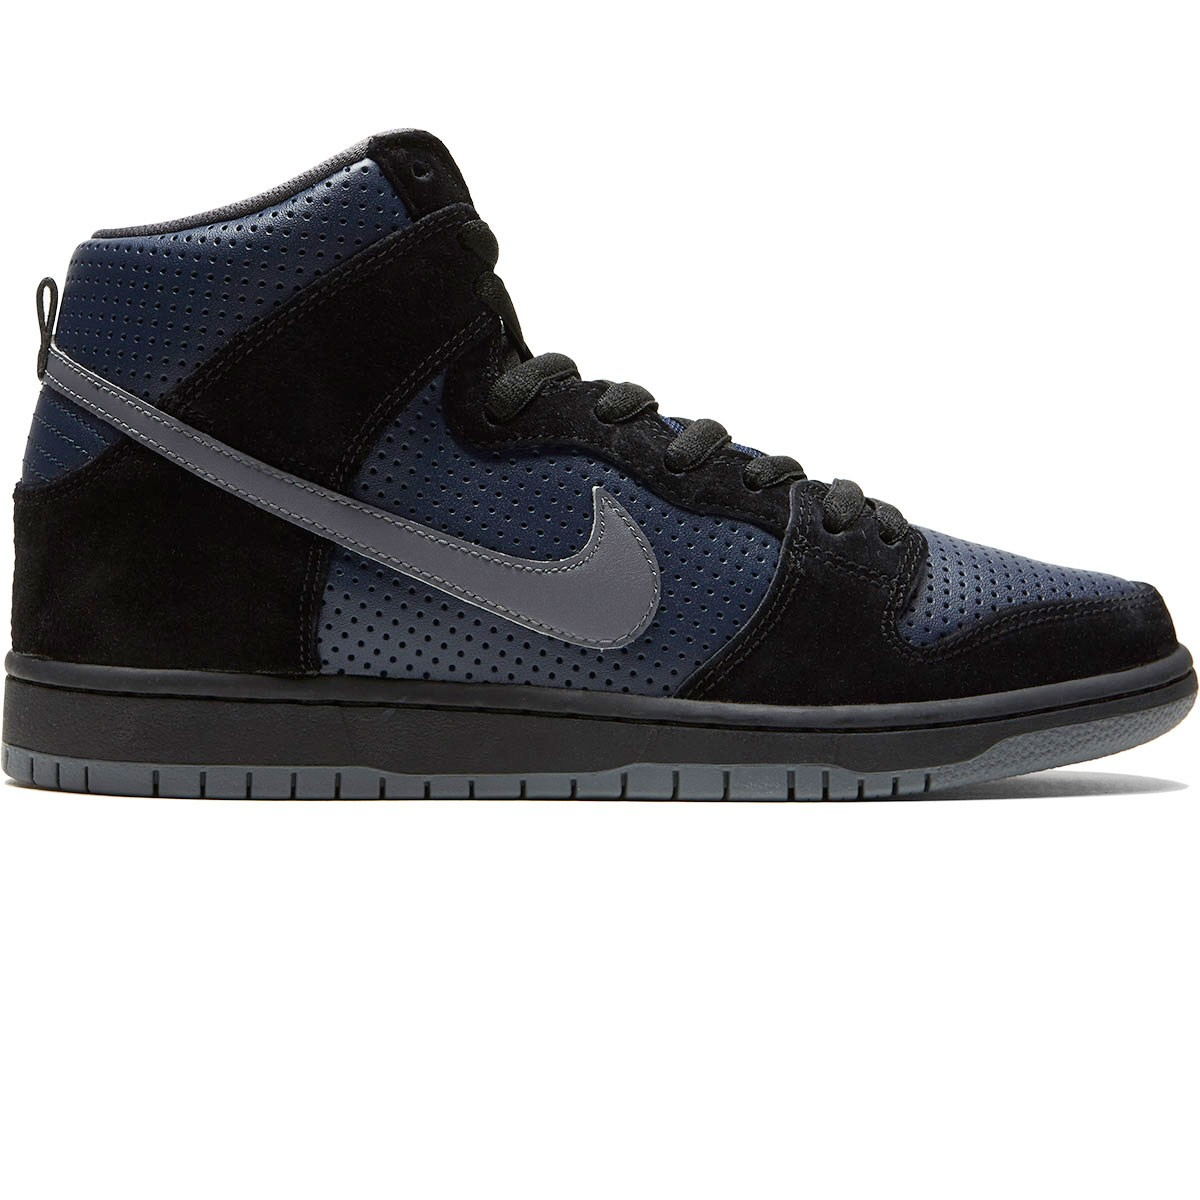 Nike SB Dunk High Gino QS Shoes - Black/Lite Graphite/Obsidian - 8.0